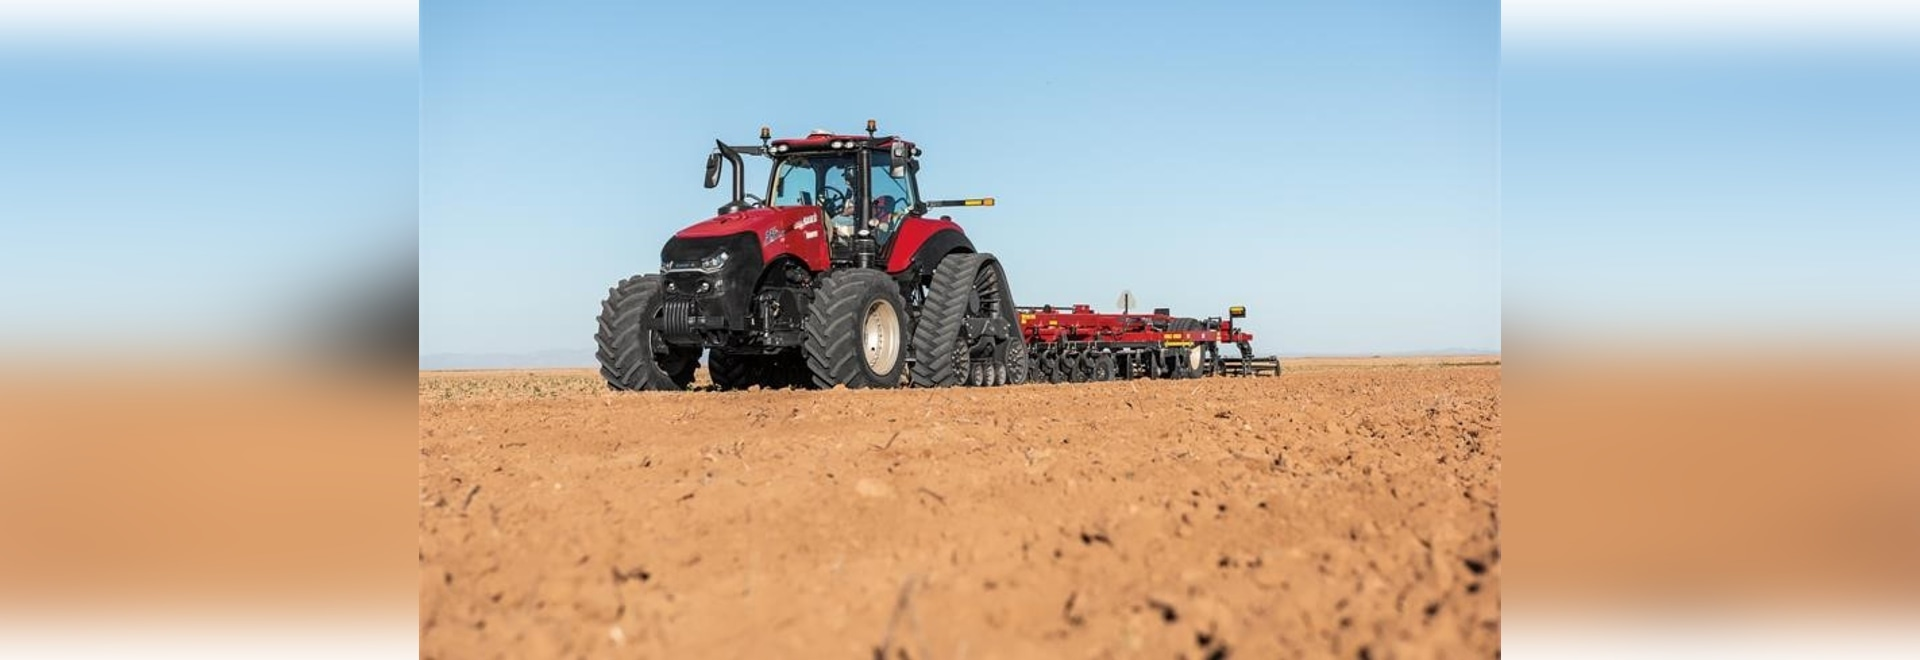 PARTING WAYS: The Case IH brand will be part of a new off-highway business being created by corporate parent CNH Industrial N.V. The other business will be an on-highway business. The move offers a...